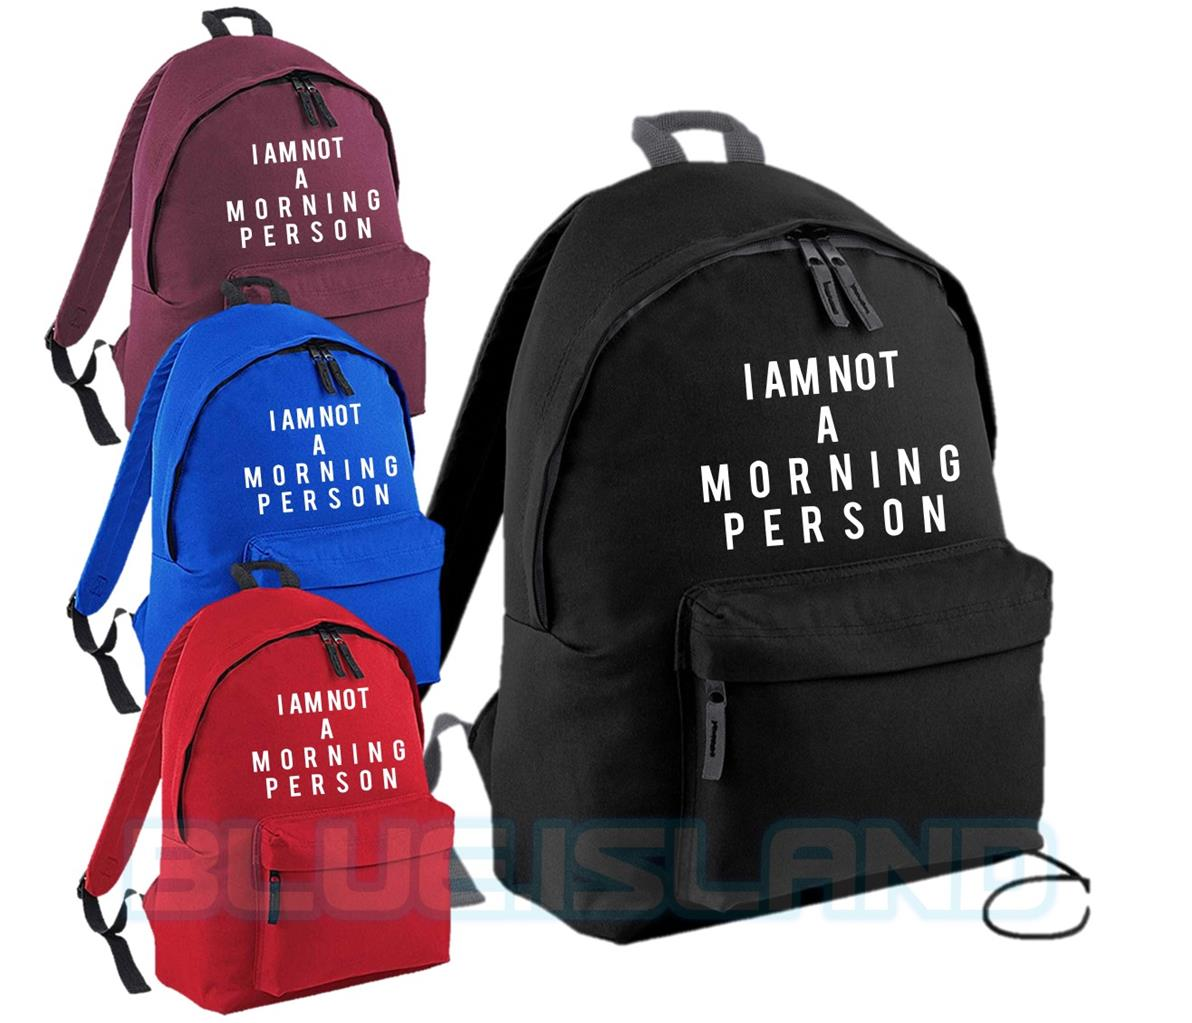 I AM NOT A MORNING PERSON BACKPACK BLOGGER FUNNY TUMBLR